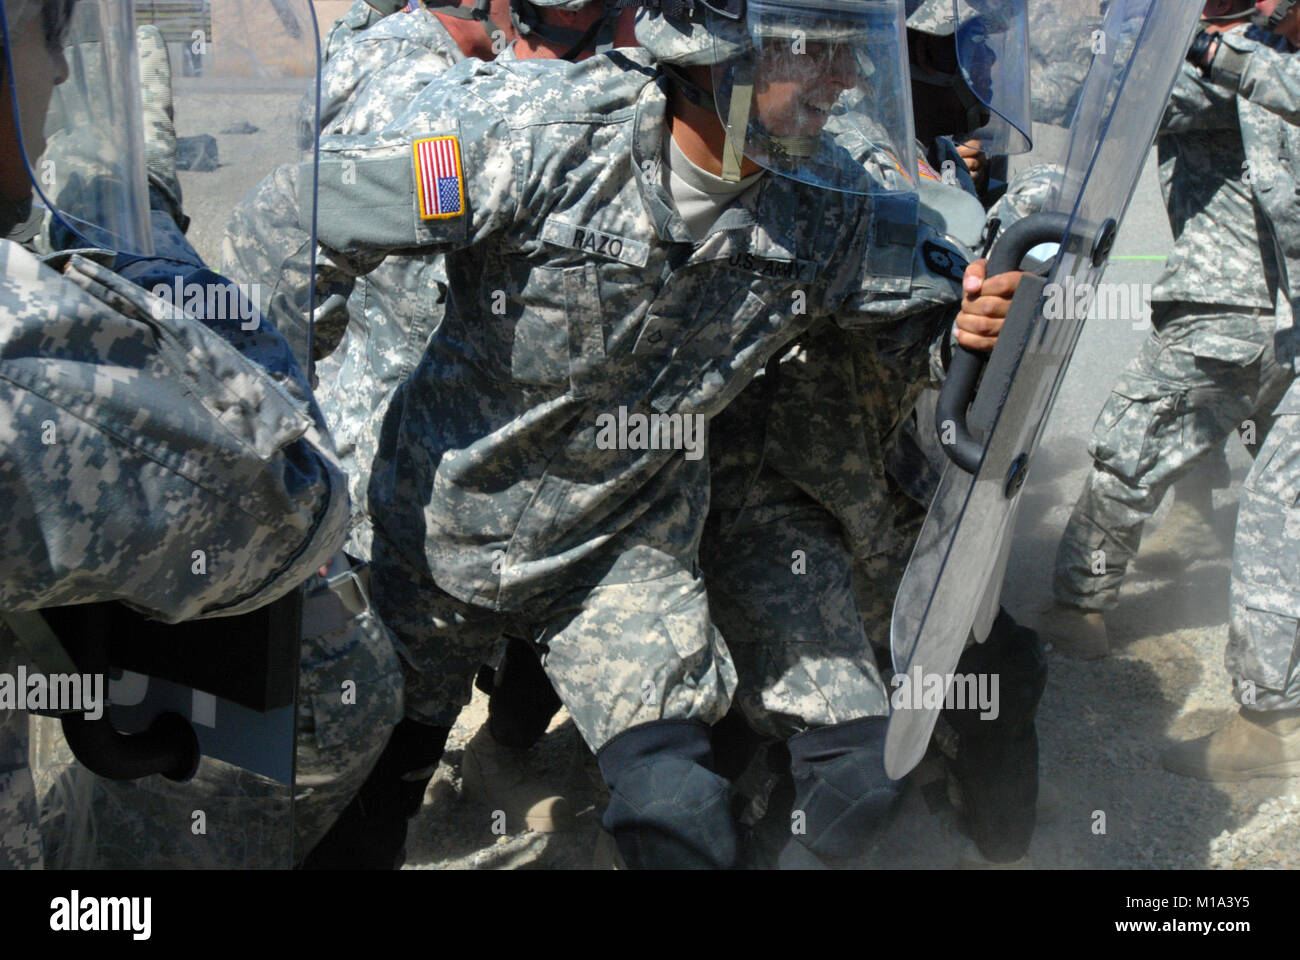 110716-A-XB575-001 A member of the 40th Military Police Company, 185th Military Police Battalion, 49th  Military - Stock Image